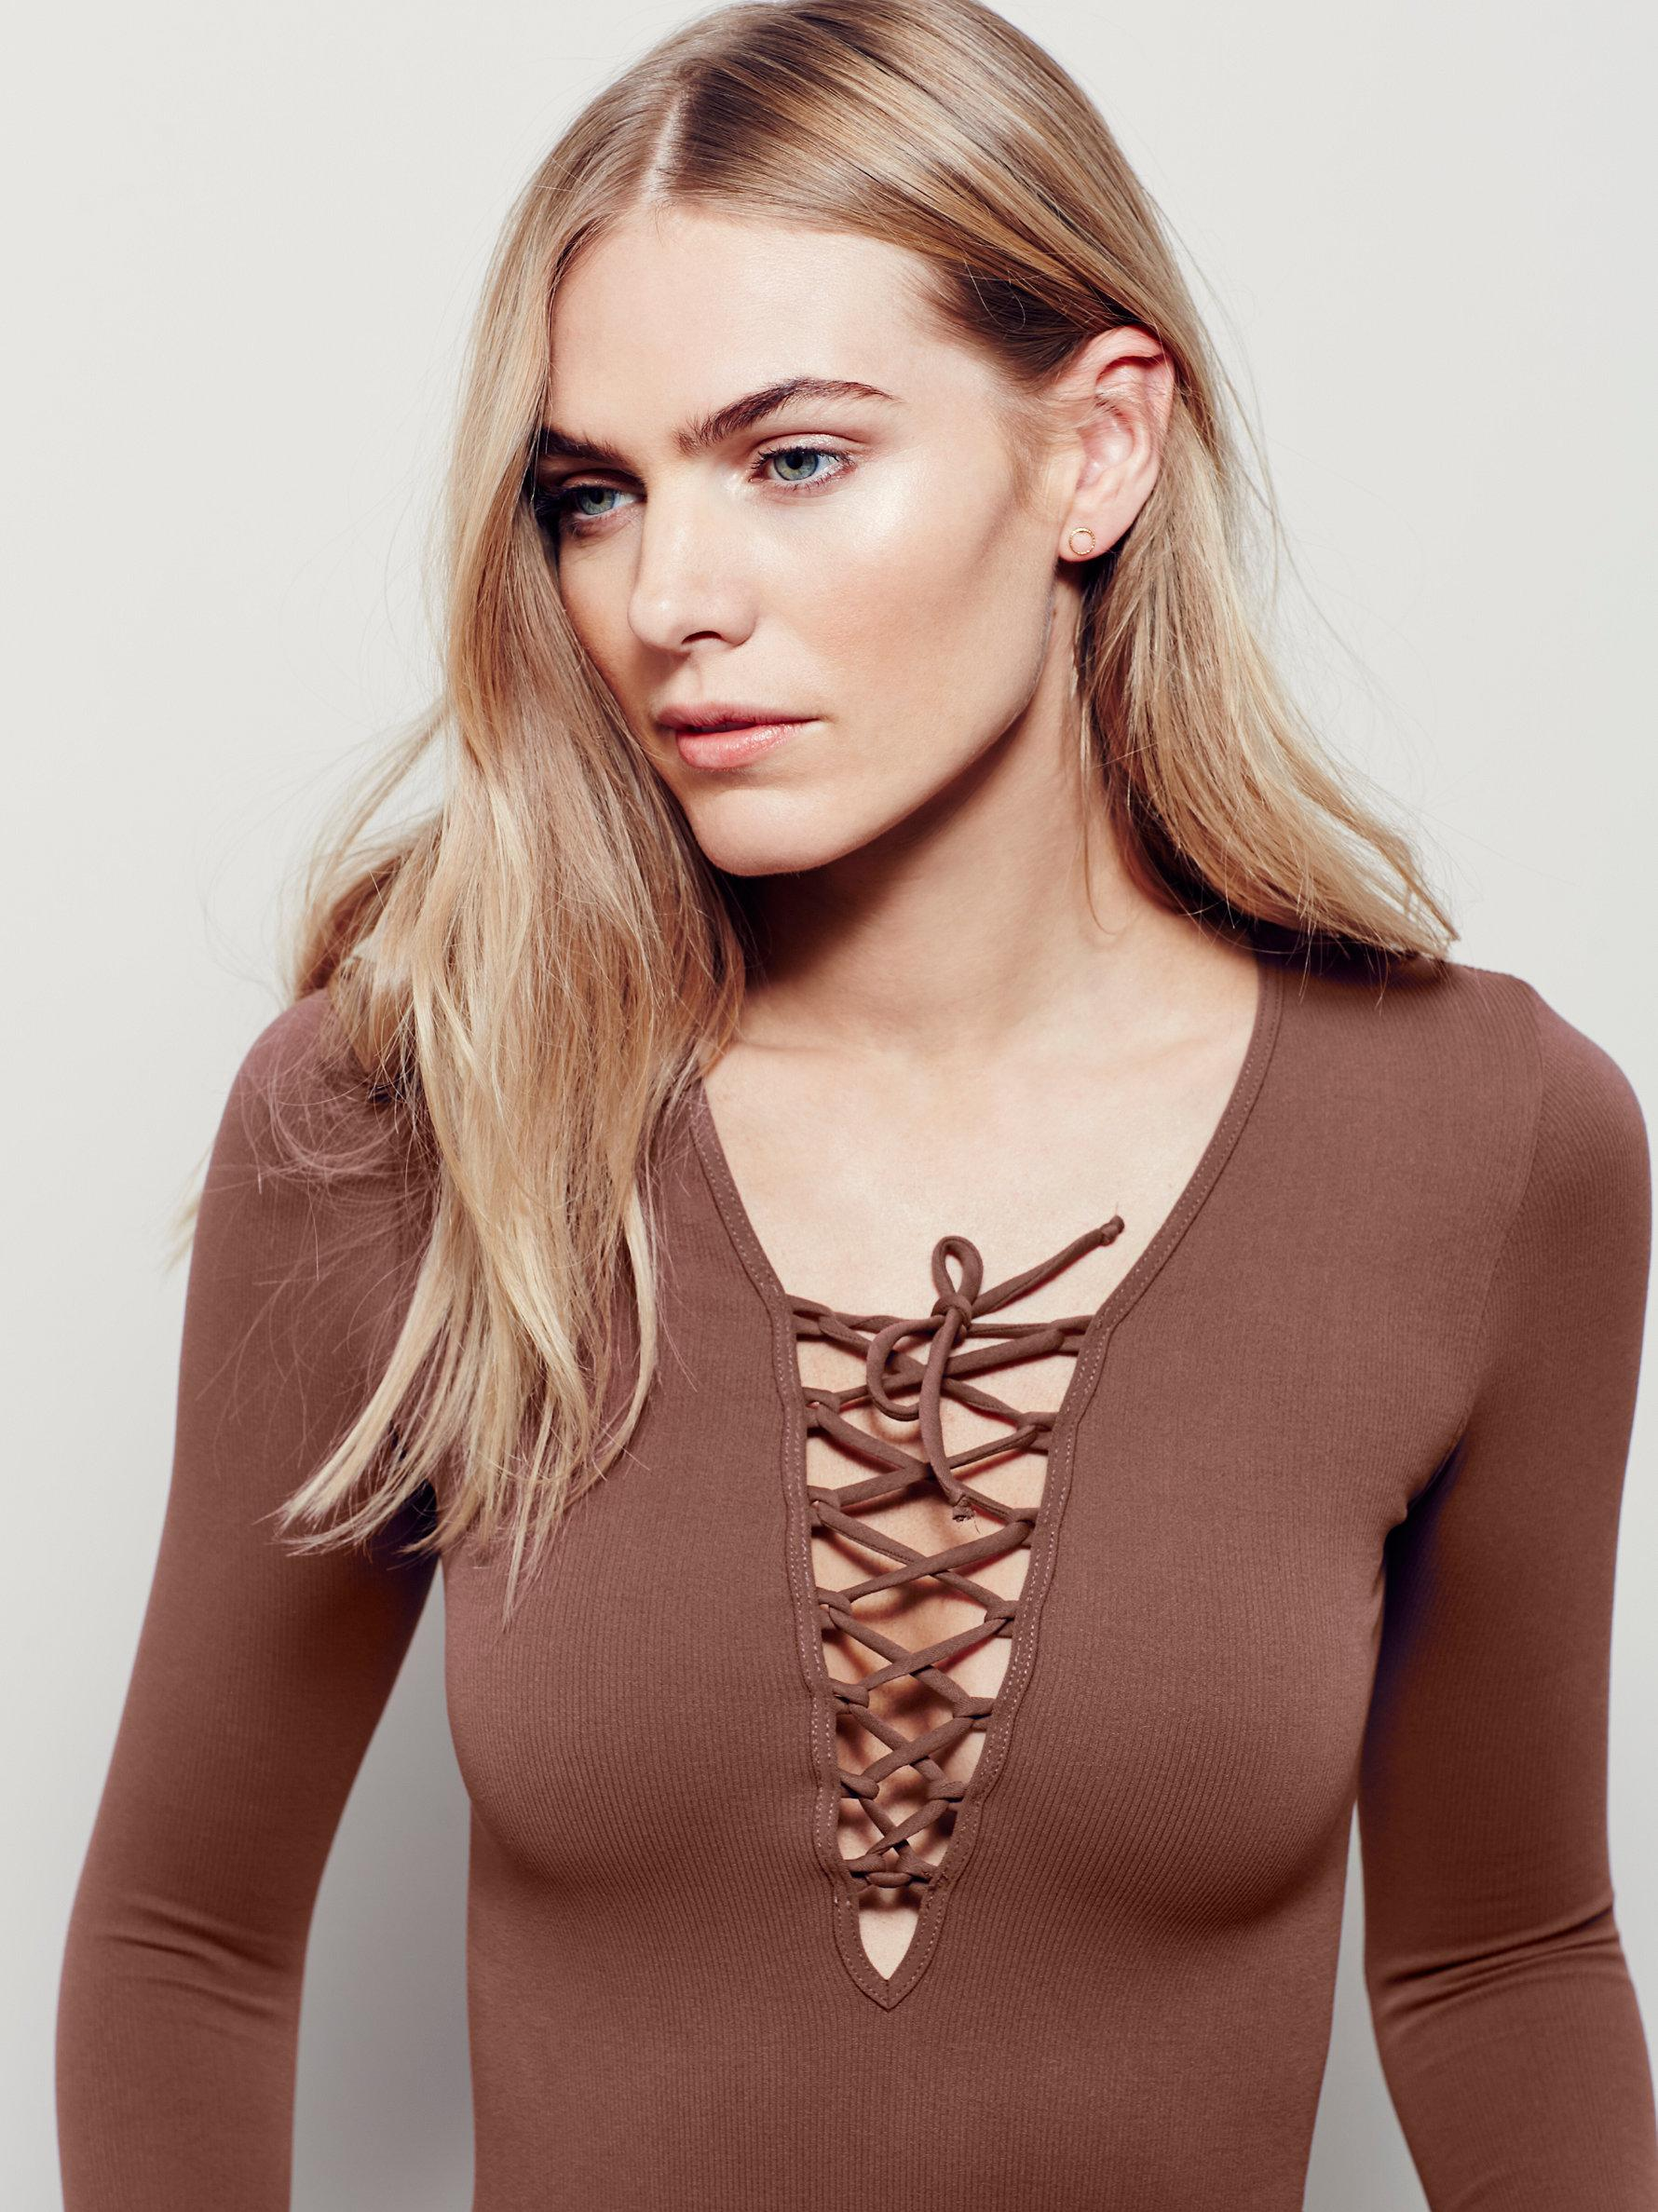 Lyst - Free People Intimately Lace-Up Top in Brown c7e1d5c8d